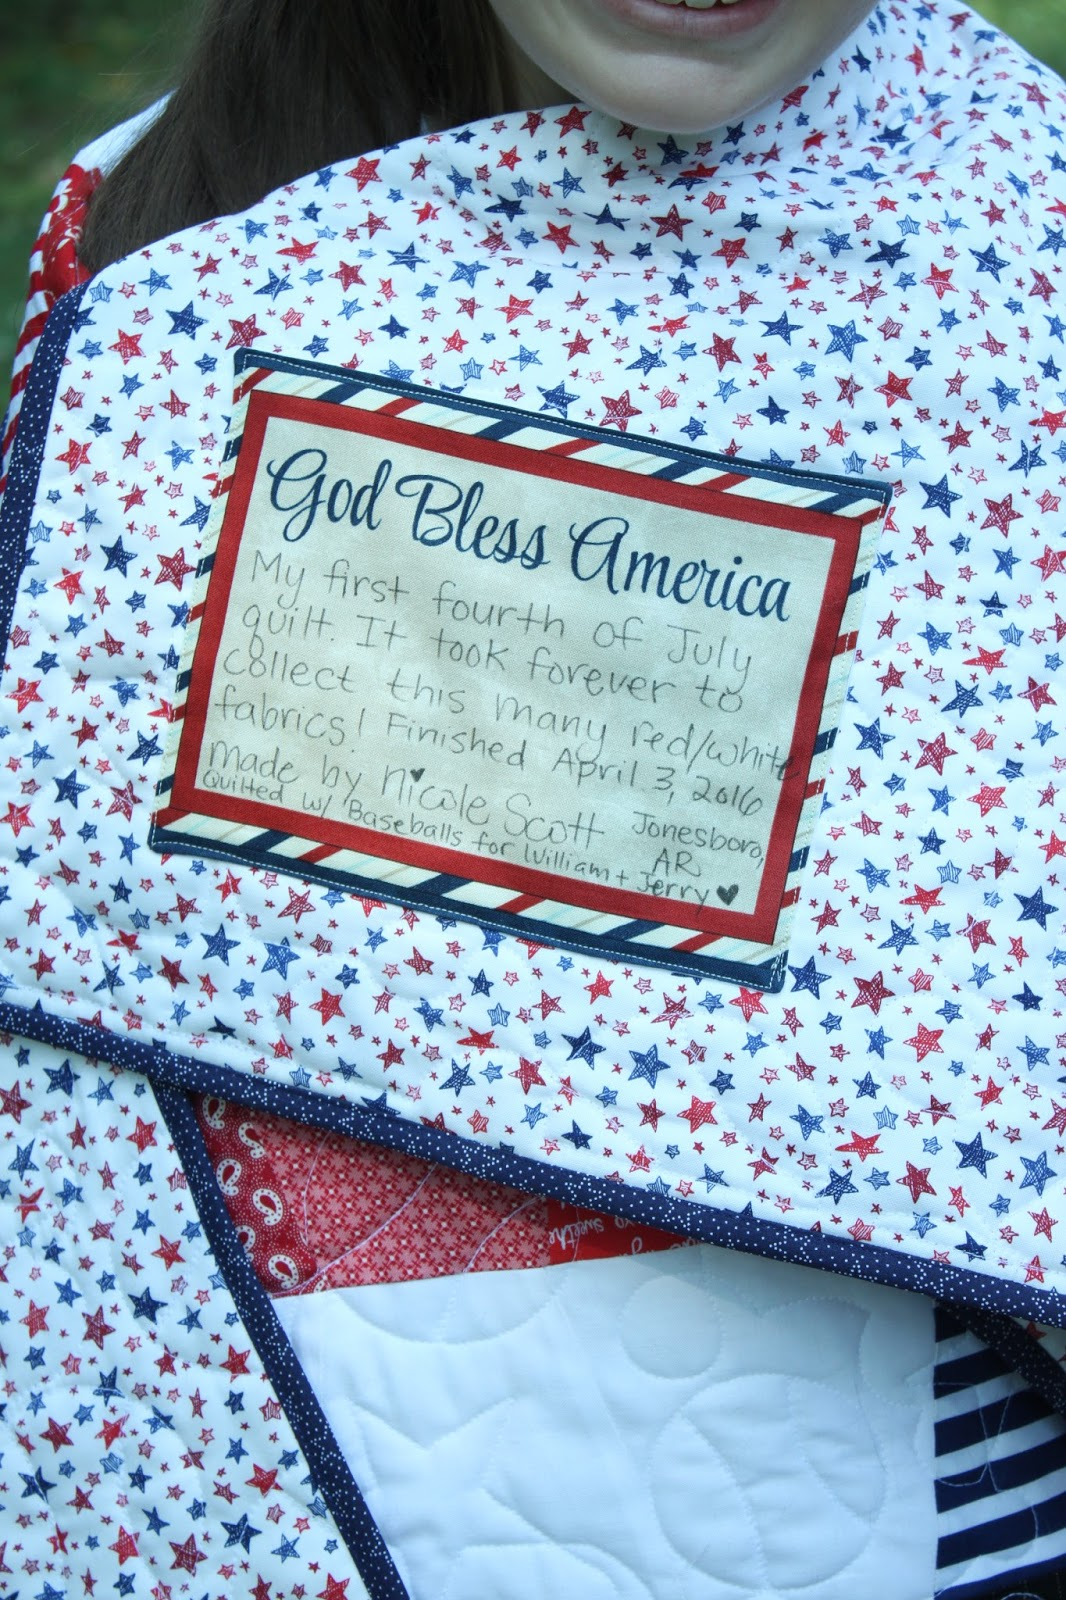 Cole's Corner and Creations: Sew Americana! : hand sew quilt - Adamdwight.com